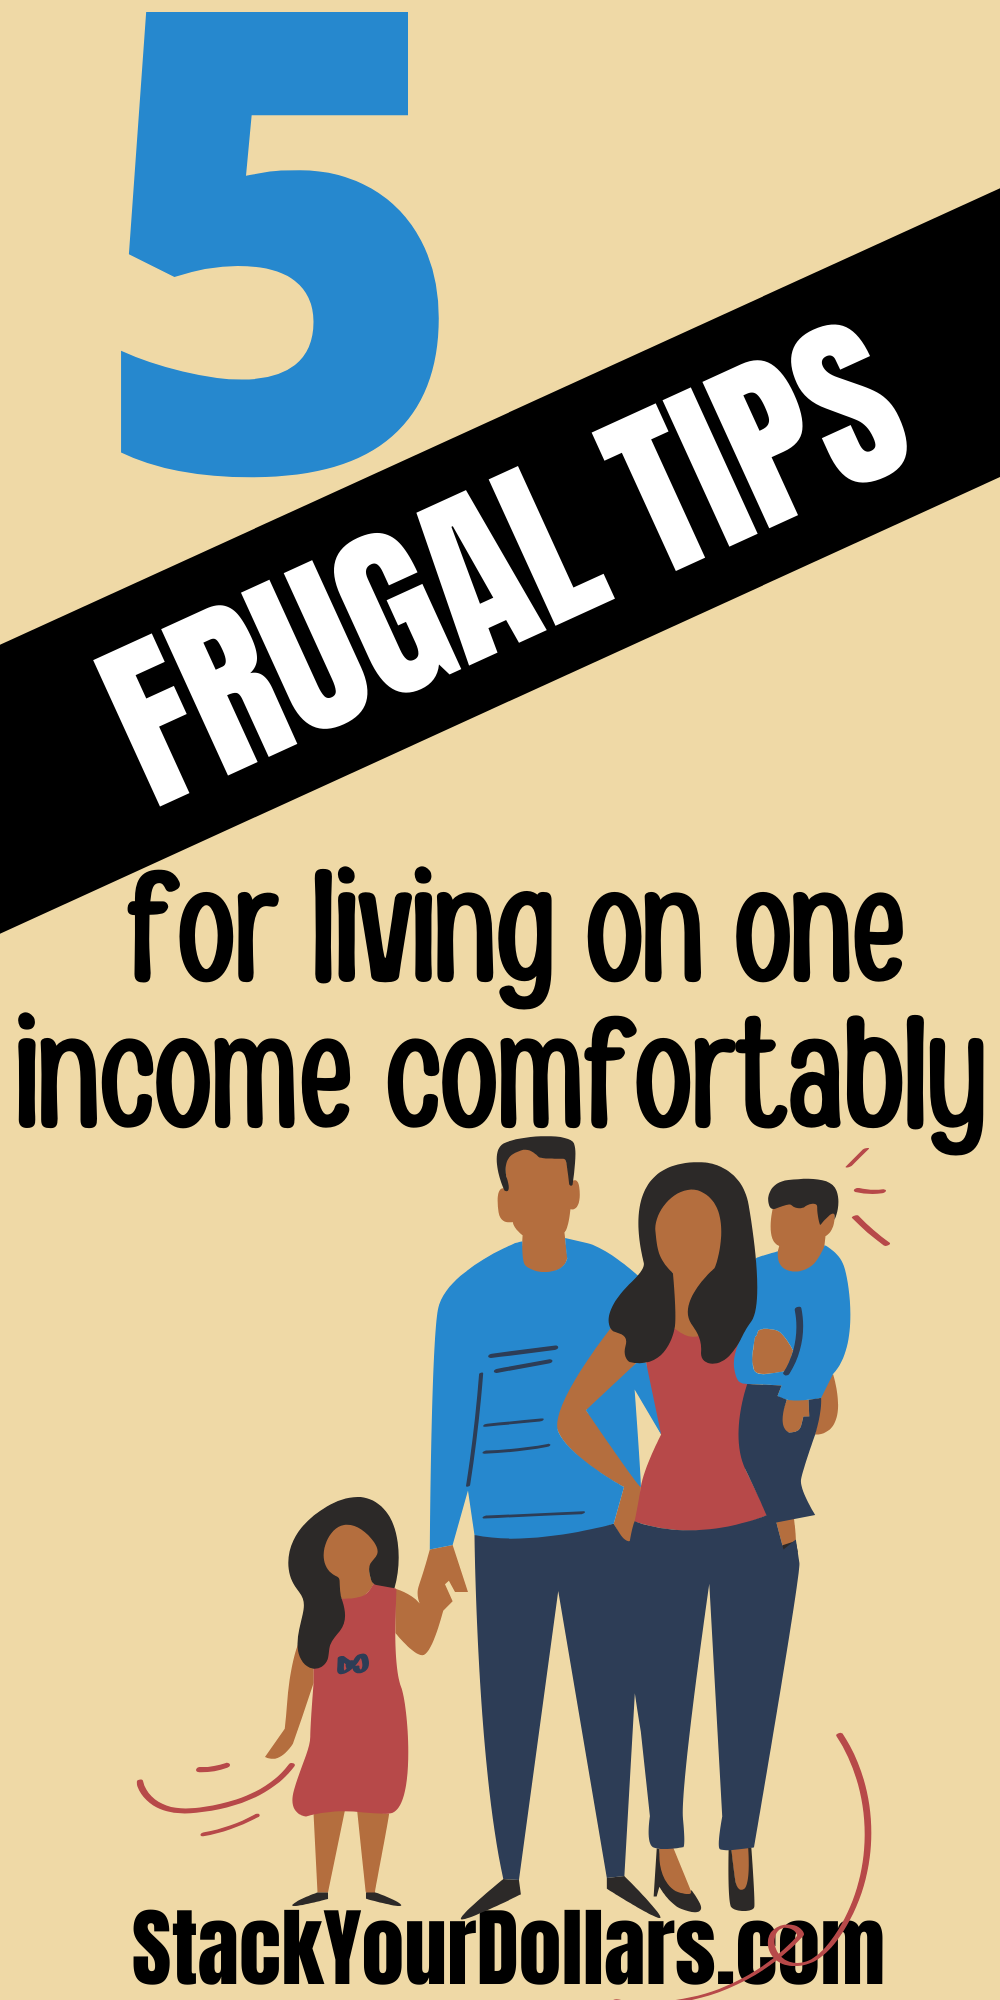 To live on one income as a family can be hard. These are some tips that can help you adjust to this style of life with your budget and allow you to live comfortably within your means. #StackYourDollars